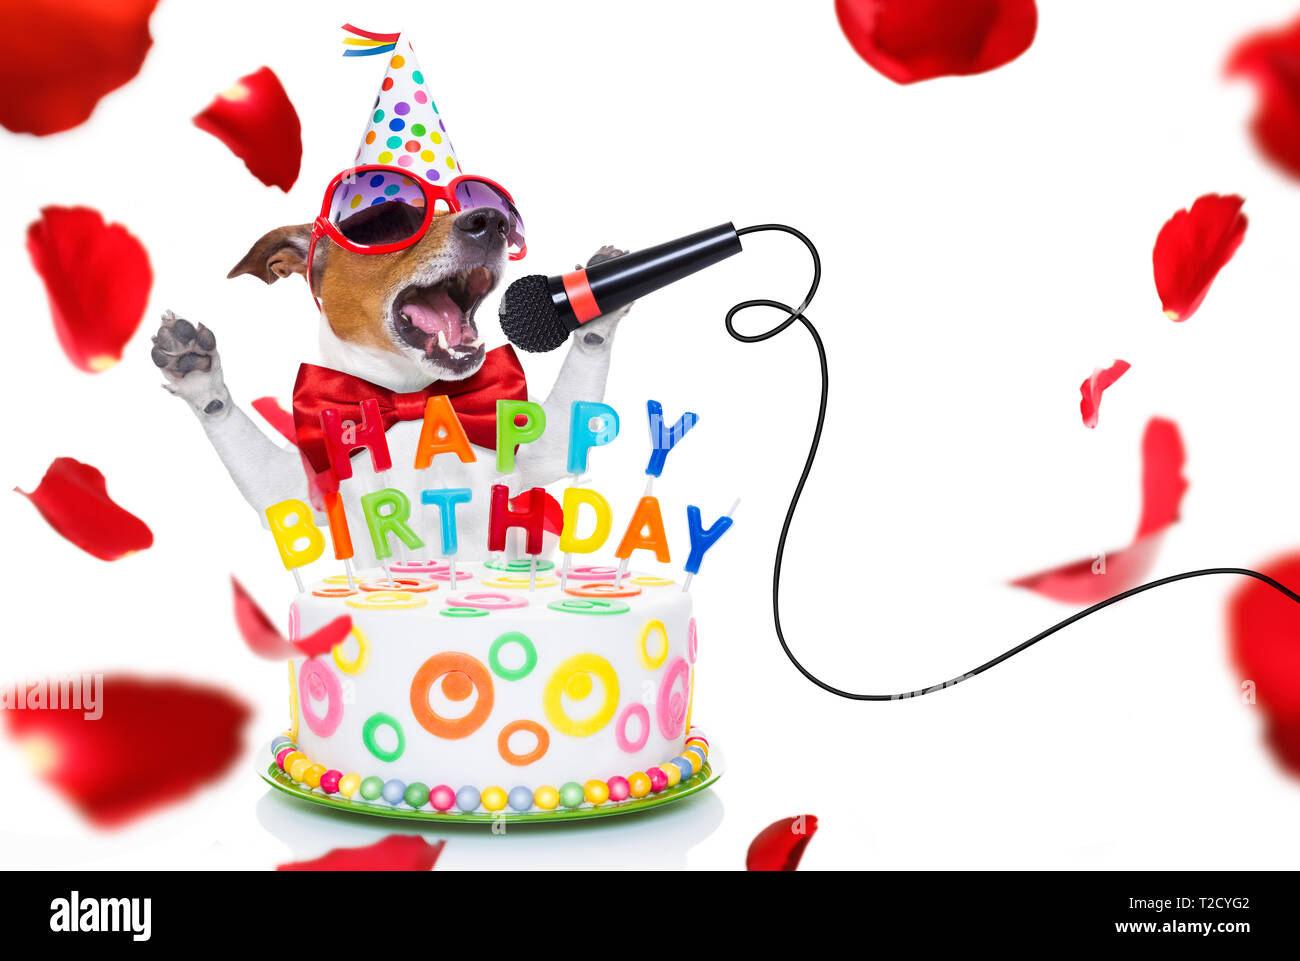 Surprising Jack Russell Dog As A Surprise Singing Birthday Song Like Karaoke Funny Birthday Cards Online Alyptdamsfinfo